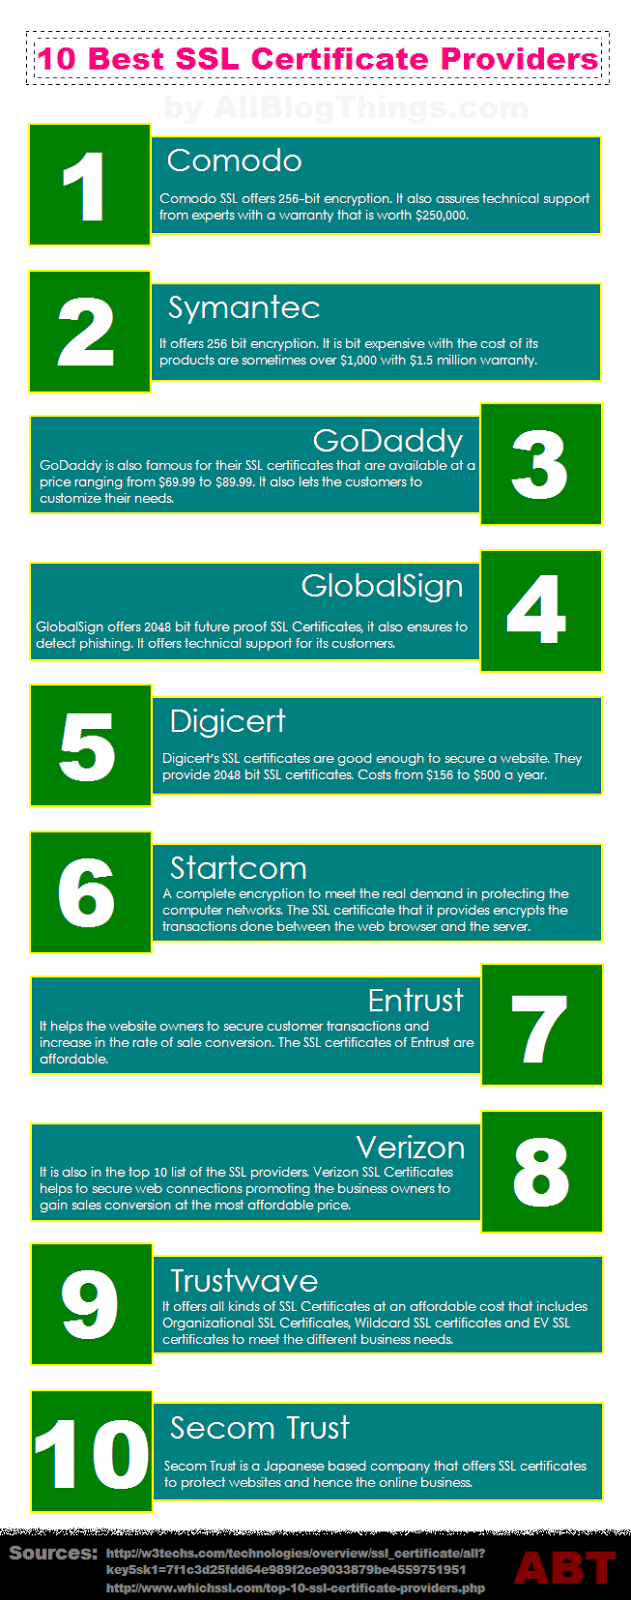 10 Best SSL Certificate Providers With Trust - Infographic